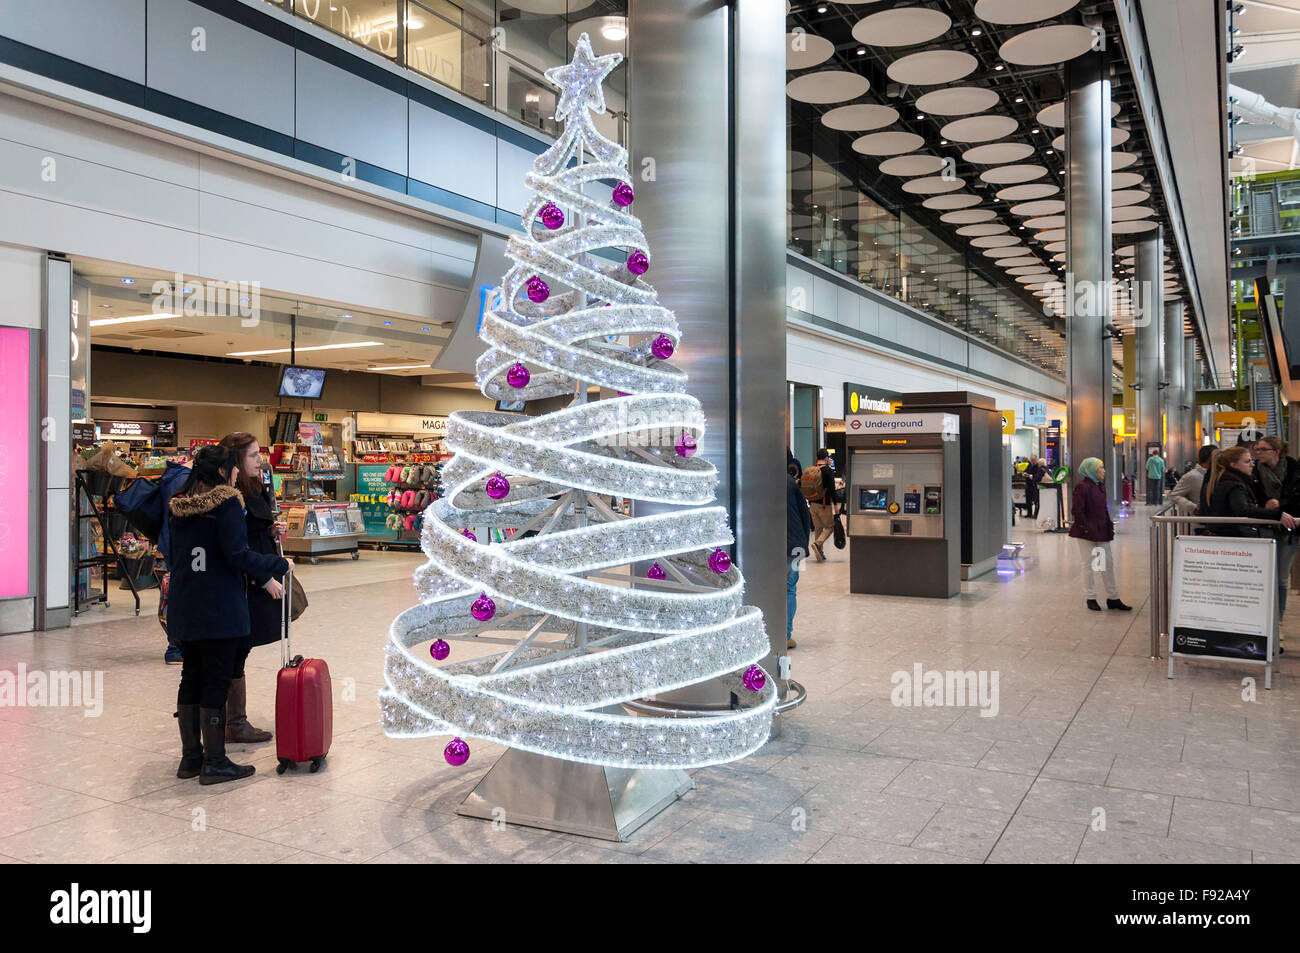 Christmas tree at arrivals level, Terminal 5, Heathrow Airport. Hounslow, Greater London, England, United Kingdom - Stock Image